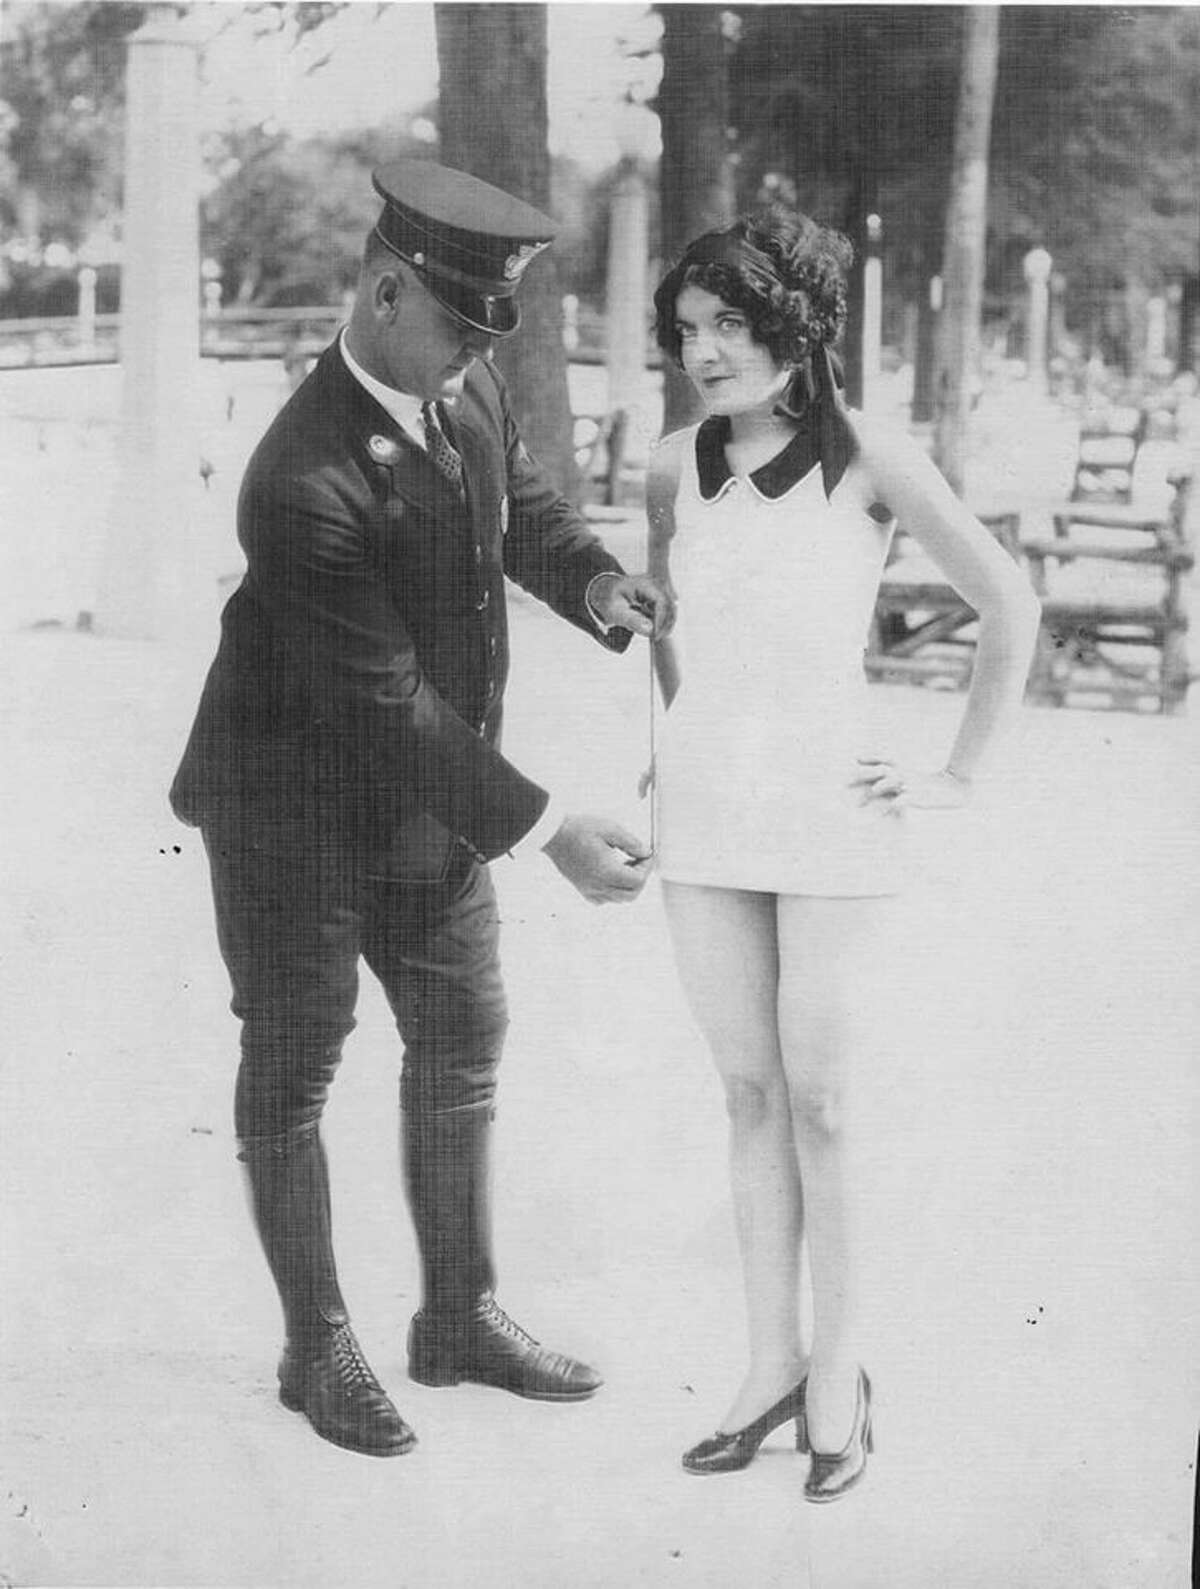 The '20s: A San Antonio Police Department captain measures the swimsuit of a young woman, believed to be Miss San Antonio 1927 Florence Zoeller at San Pedro Park.